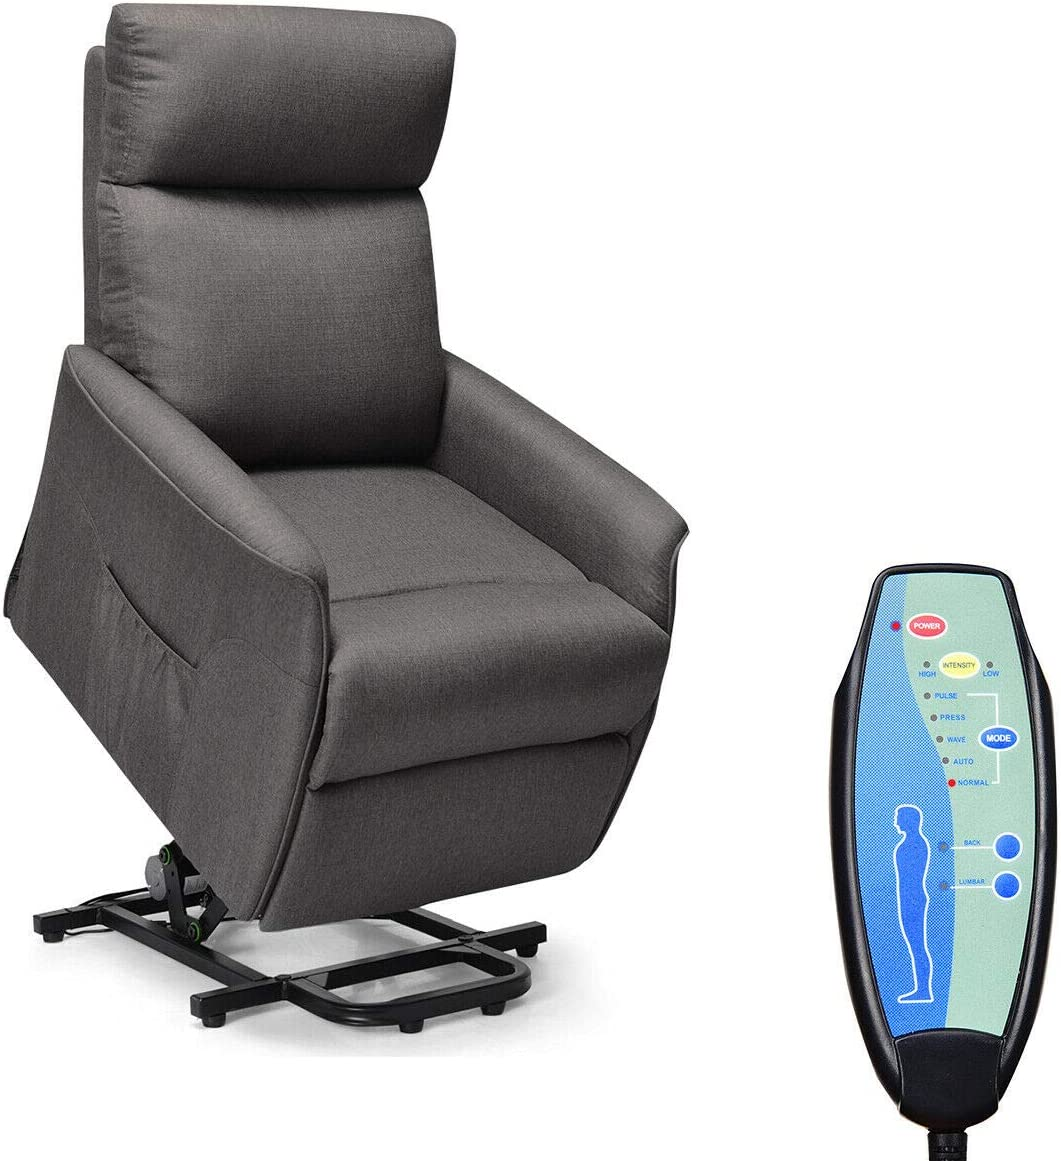 Giantex Power Lift Massage Recliner Chair for Elderly, Soft Warm Fabric Sofa, Heavy Padded Cushion, Remote Control, Home Theater Seating, Leisure Lounge w Side Pocket, Living Room Office Dark Grey